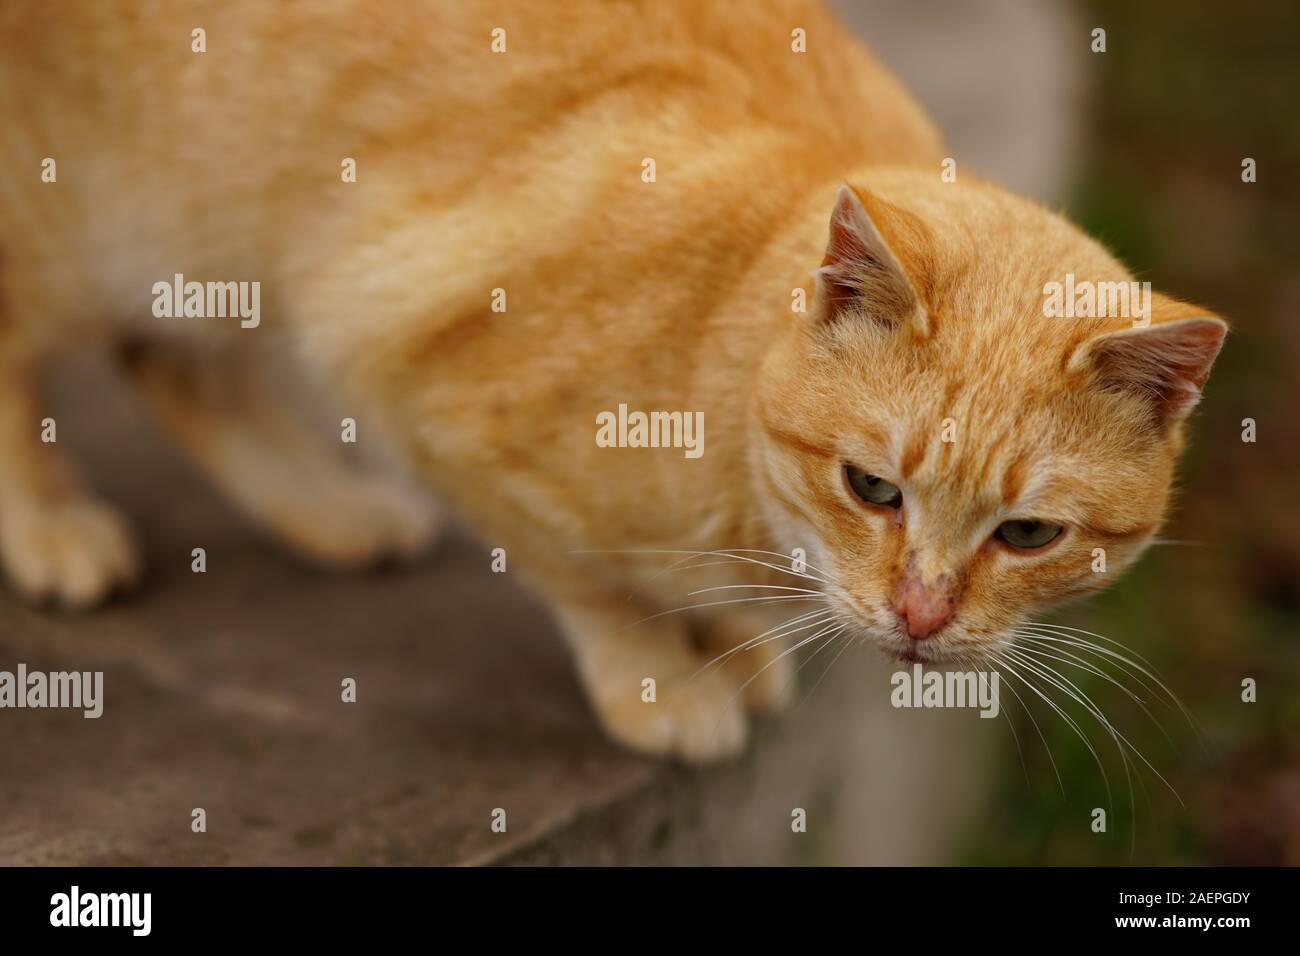 Portrait of a red cat on the street, attentive look. Stock Photo